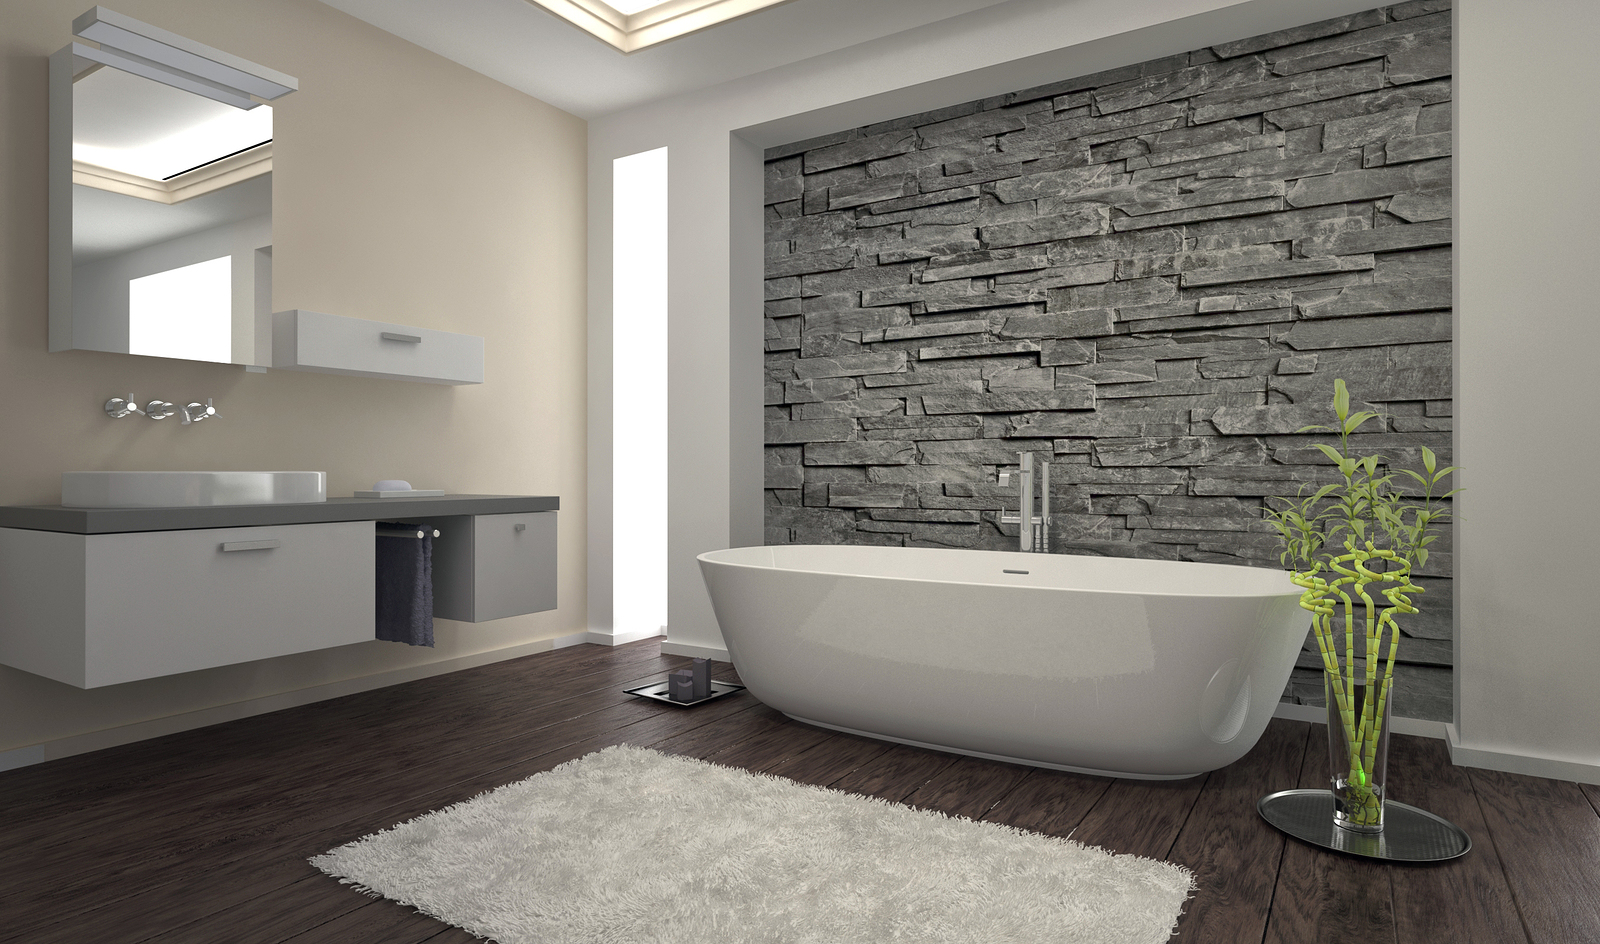 In recent years the bathroom has evolved from a purely functional room to a  living space where we can luxuriate and wash away the worries of the day.